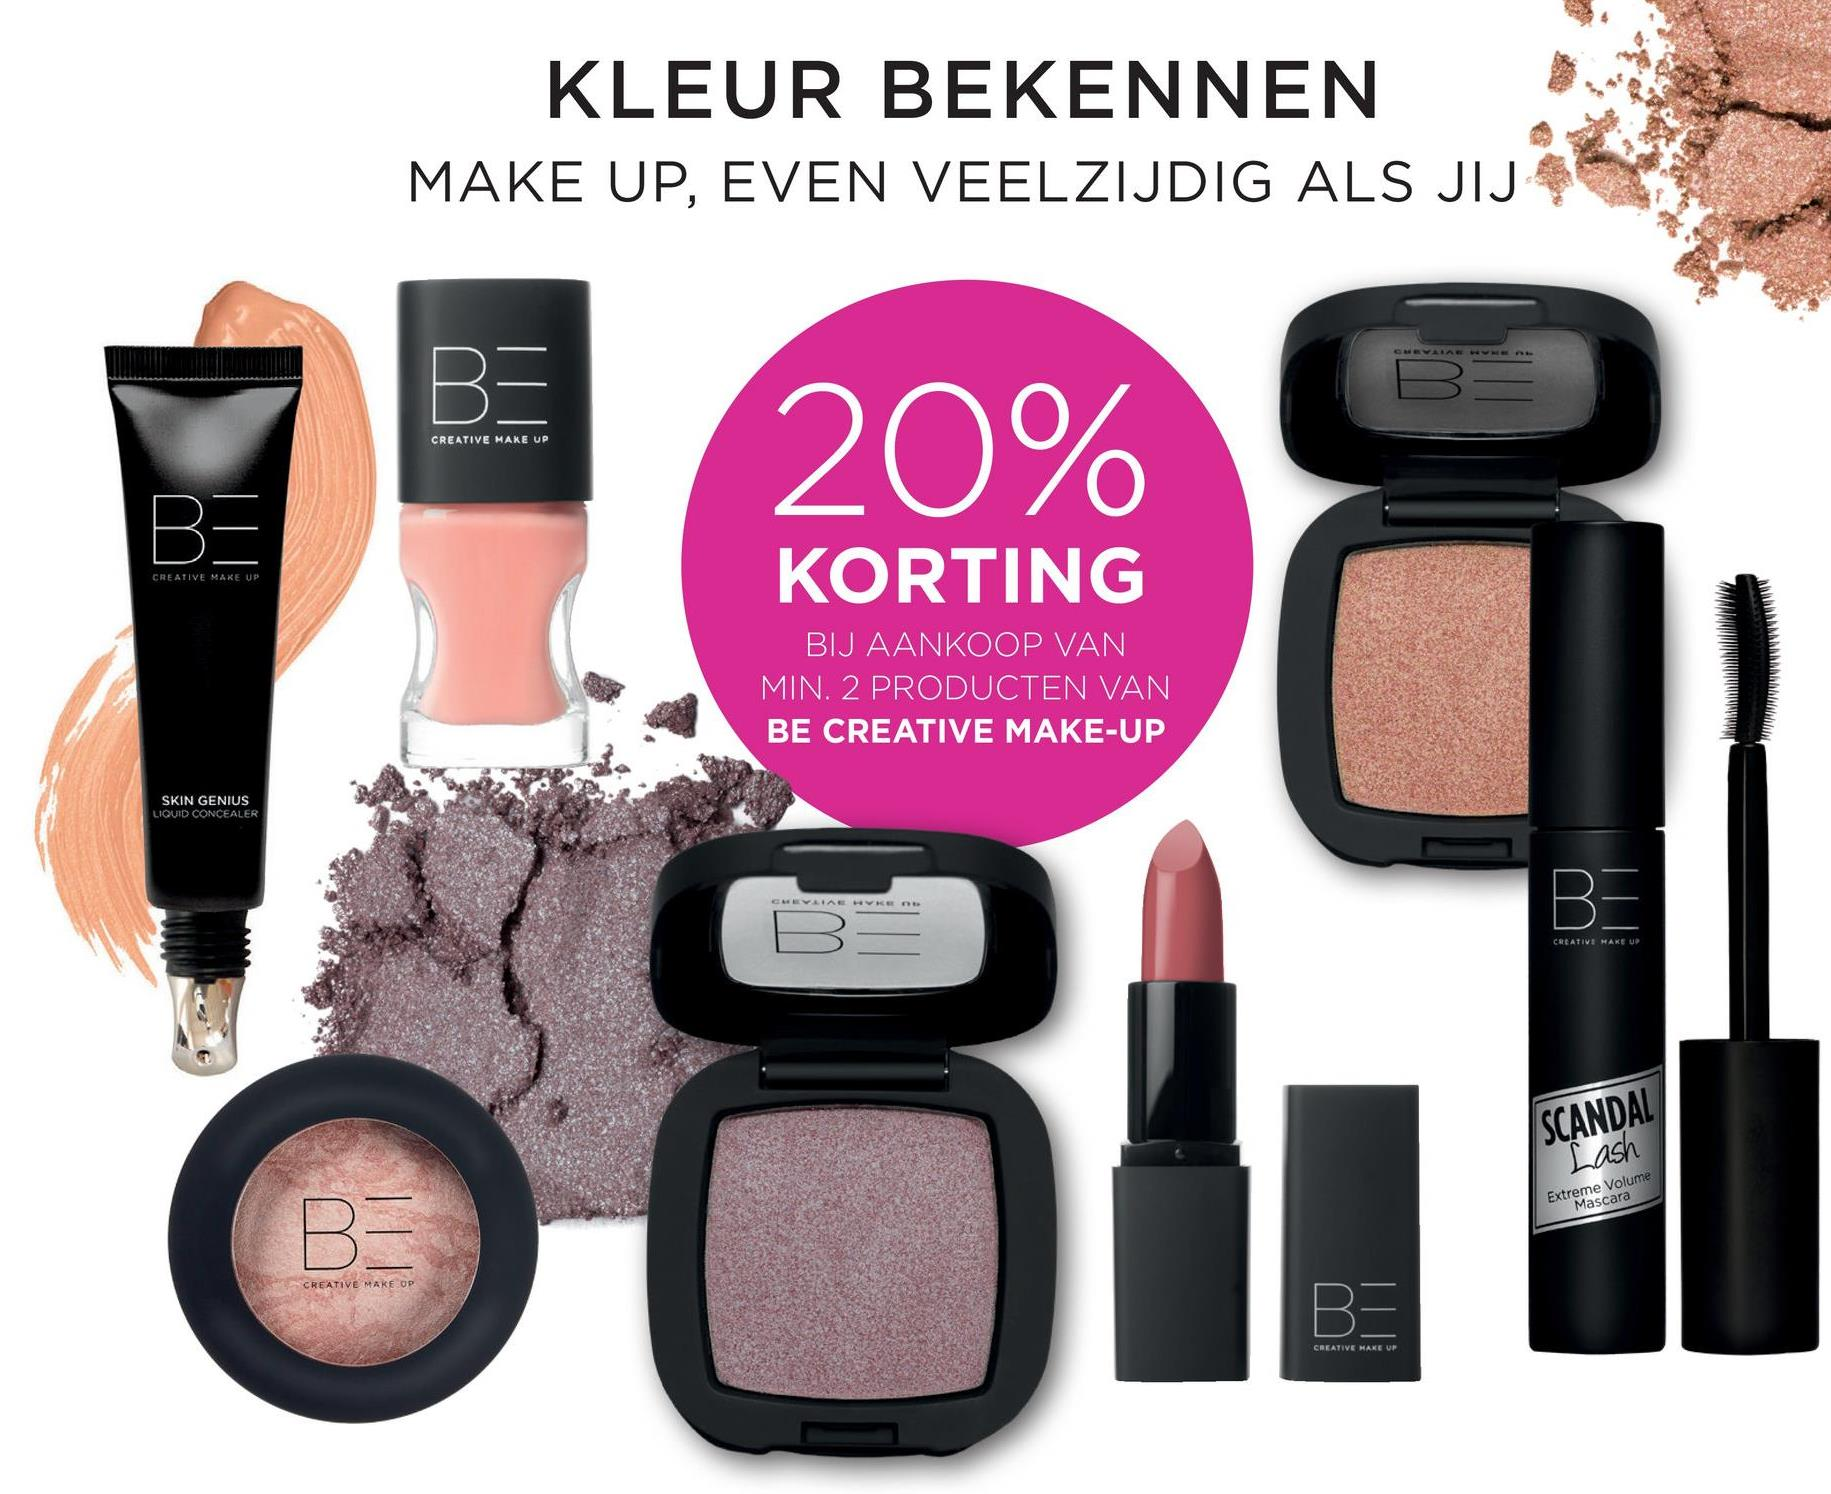 KLEUR BEKENNEN MAKE UP, EVEN VEELZIJDIG ALS JIJ CREATIVE MAKE UP 20% CREATIVE MAKE UP KORTING BIJ AANKOOP VAN MIN. 2 PRODUCTEN VAN BE CREATIVE MAKE-UP lawan SKIN GENIUS LIQUID CONCEALER CREATIVE MAKE U SCANDAL Lash Extreme Volume Mascara CREATIVE MAKEUP CREATIVE MAKE UP